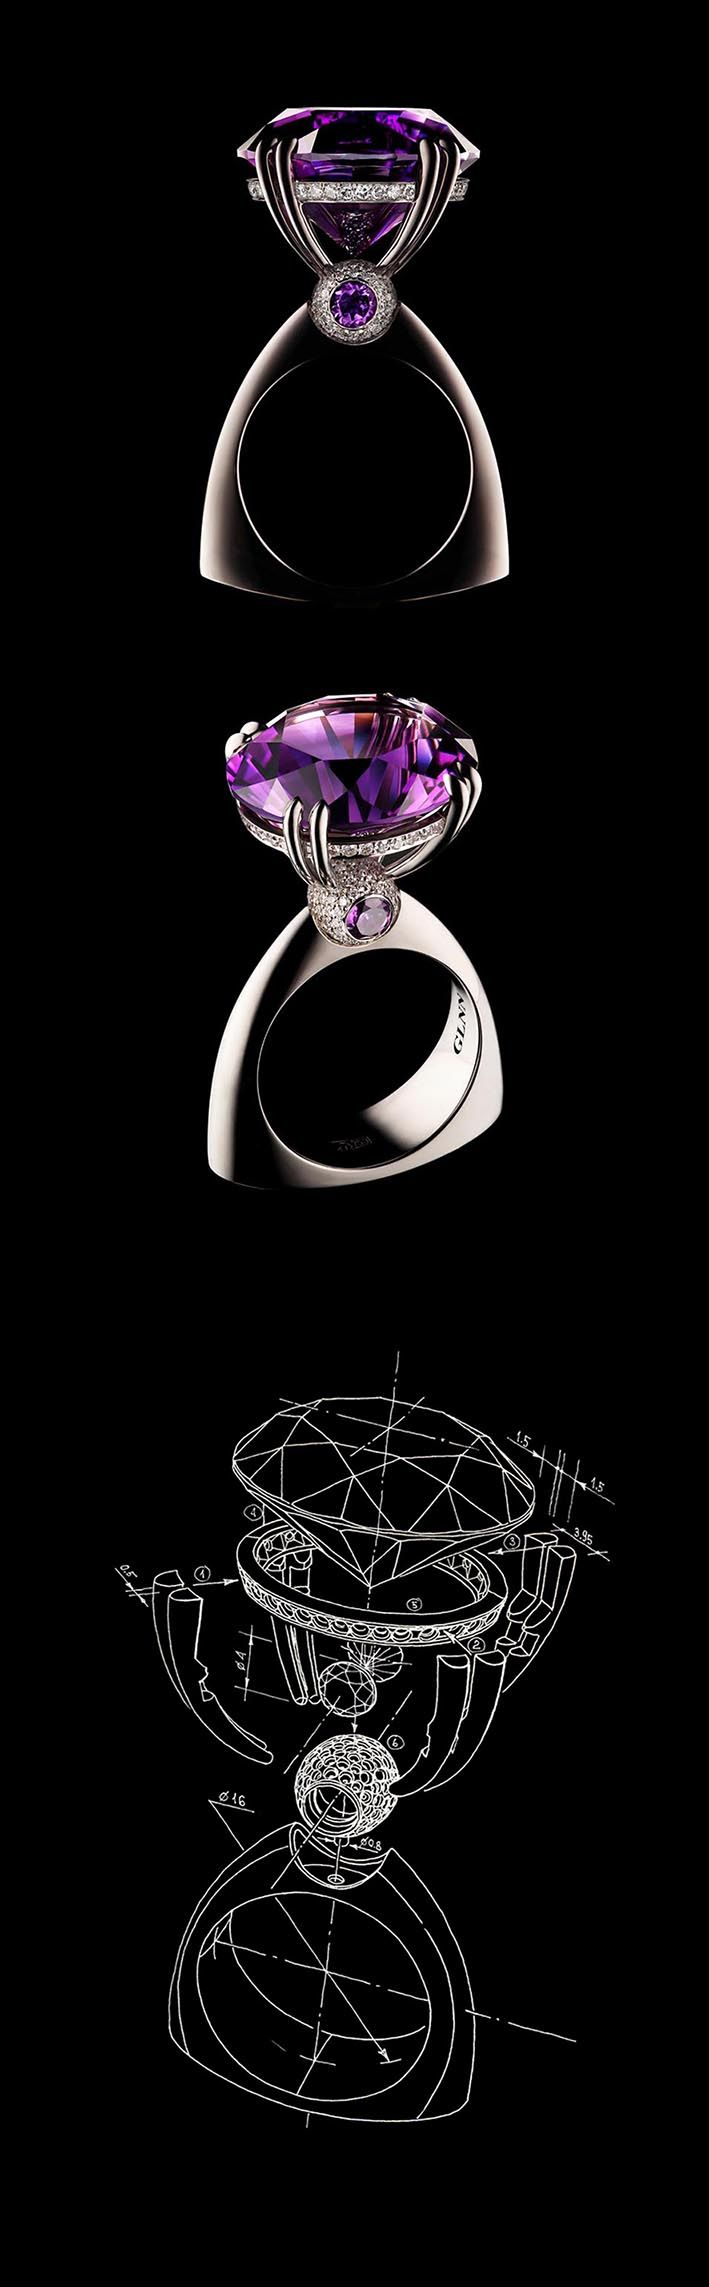 "VLAD GLYNIN jewellery - Ring ""The Eye of Providence"", 2014. White gold, amethyst, diamonds. / Кольцо ""Всевидящее"", 2014 г. Белое золото, аметист, бриллианты. / Anello ""Della Provvidenza"", 2014. Oro bianco, ametista, diamanti. I love the top part, but not keen on the shape of the band."